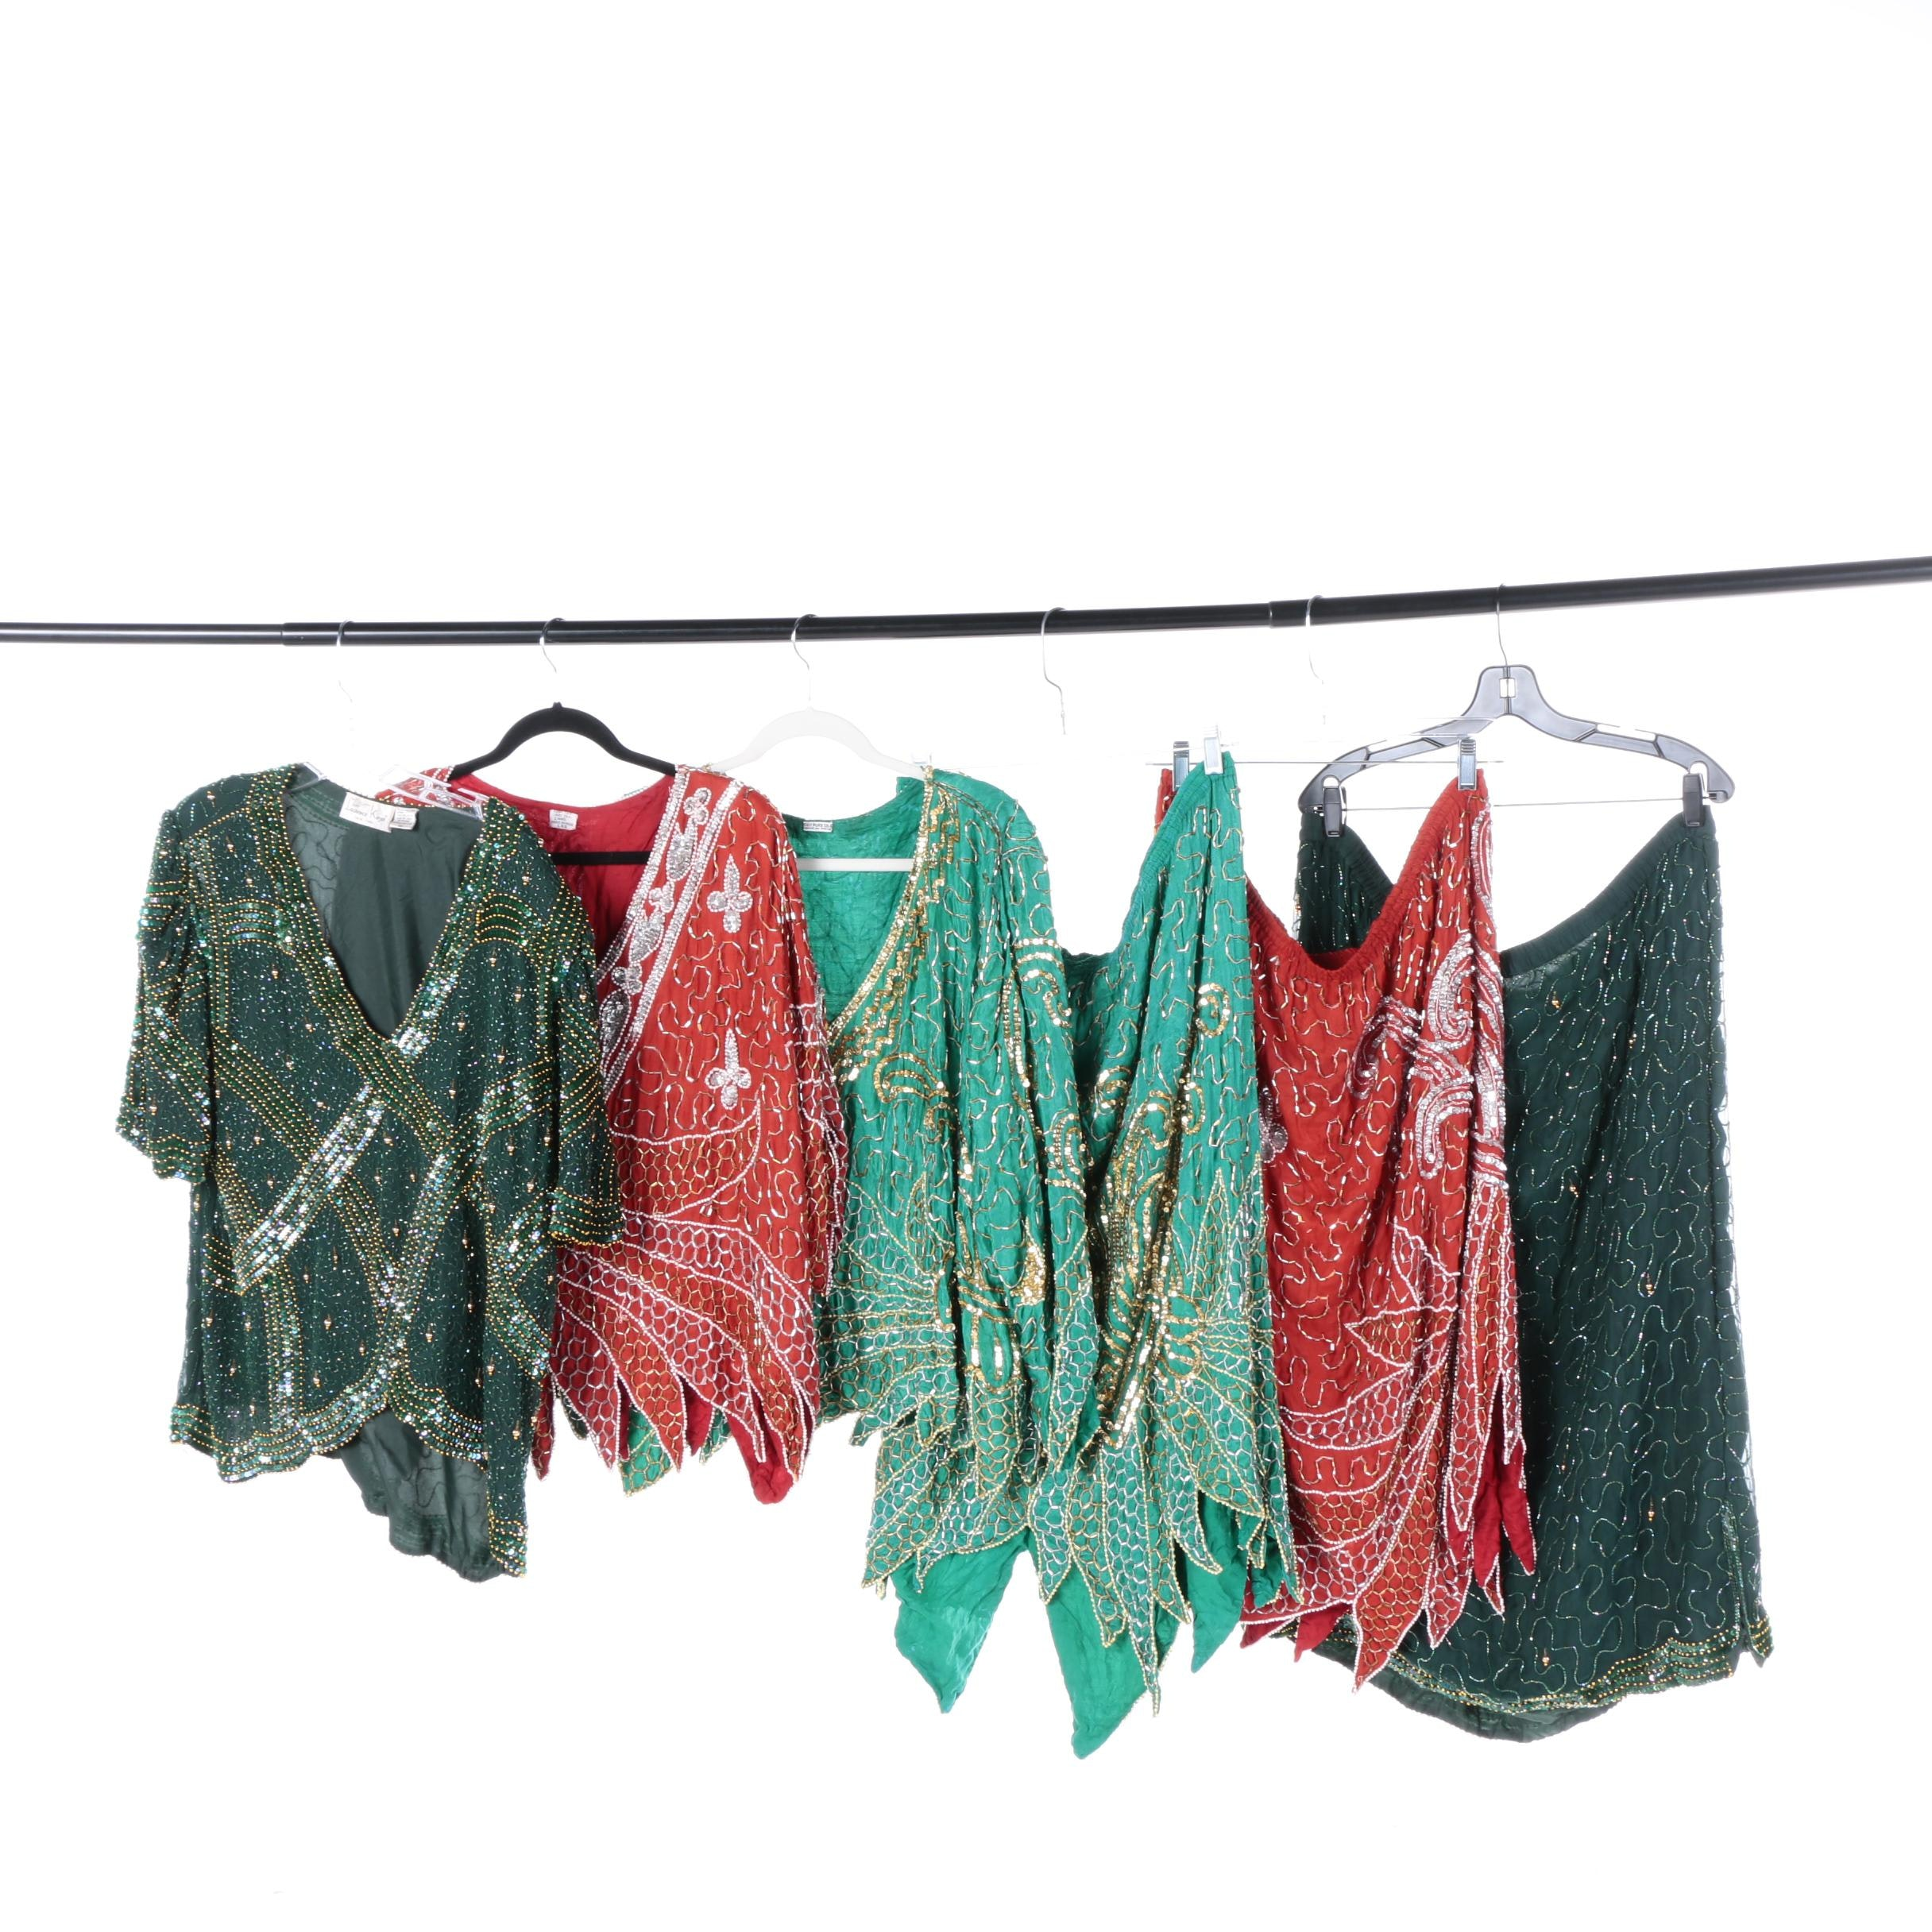 Women's Vintage Beaded and Sequined Two Piece Outfits Including Laurence Kazar